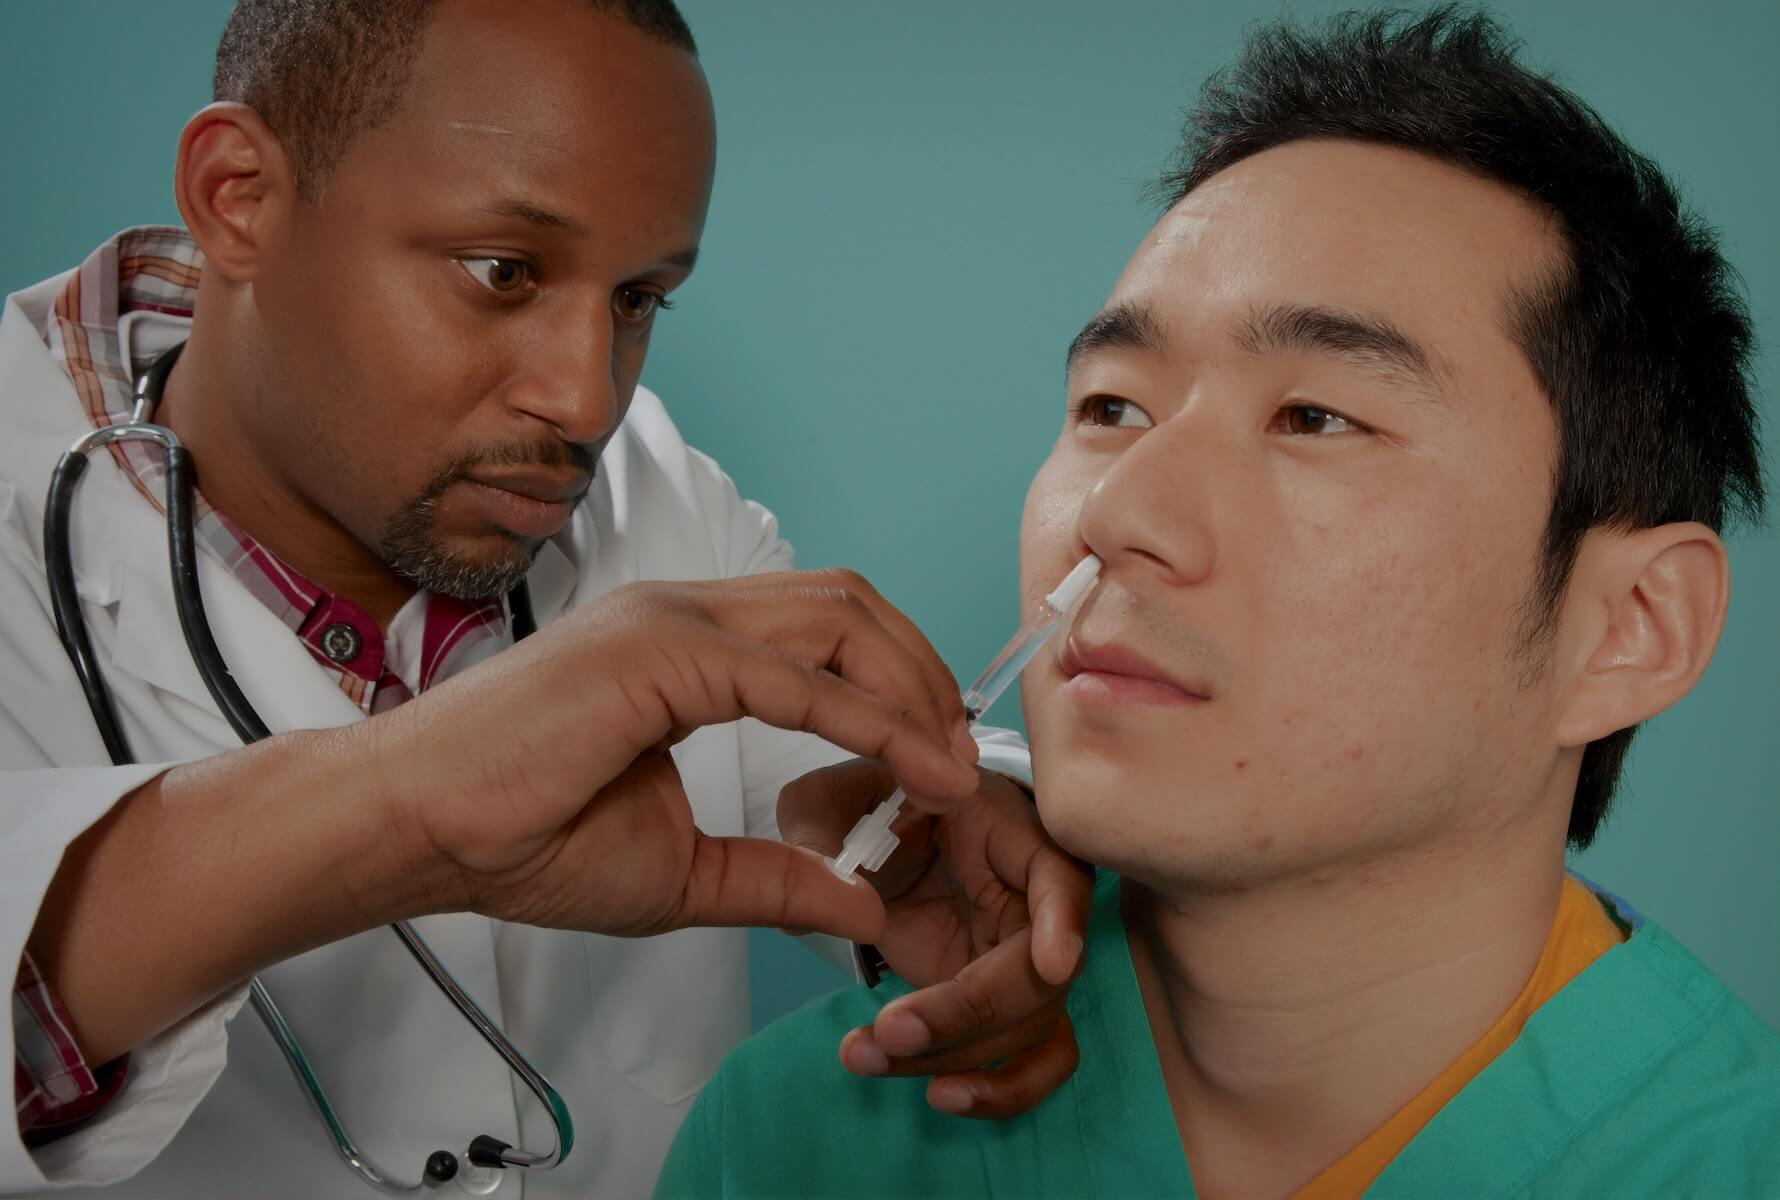 nurse practitioner gives vaccine to man on the right through is nasal cavity FNP